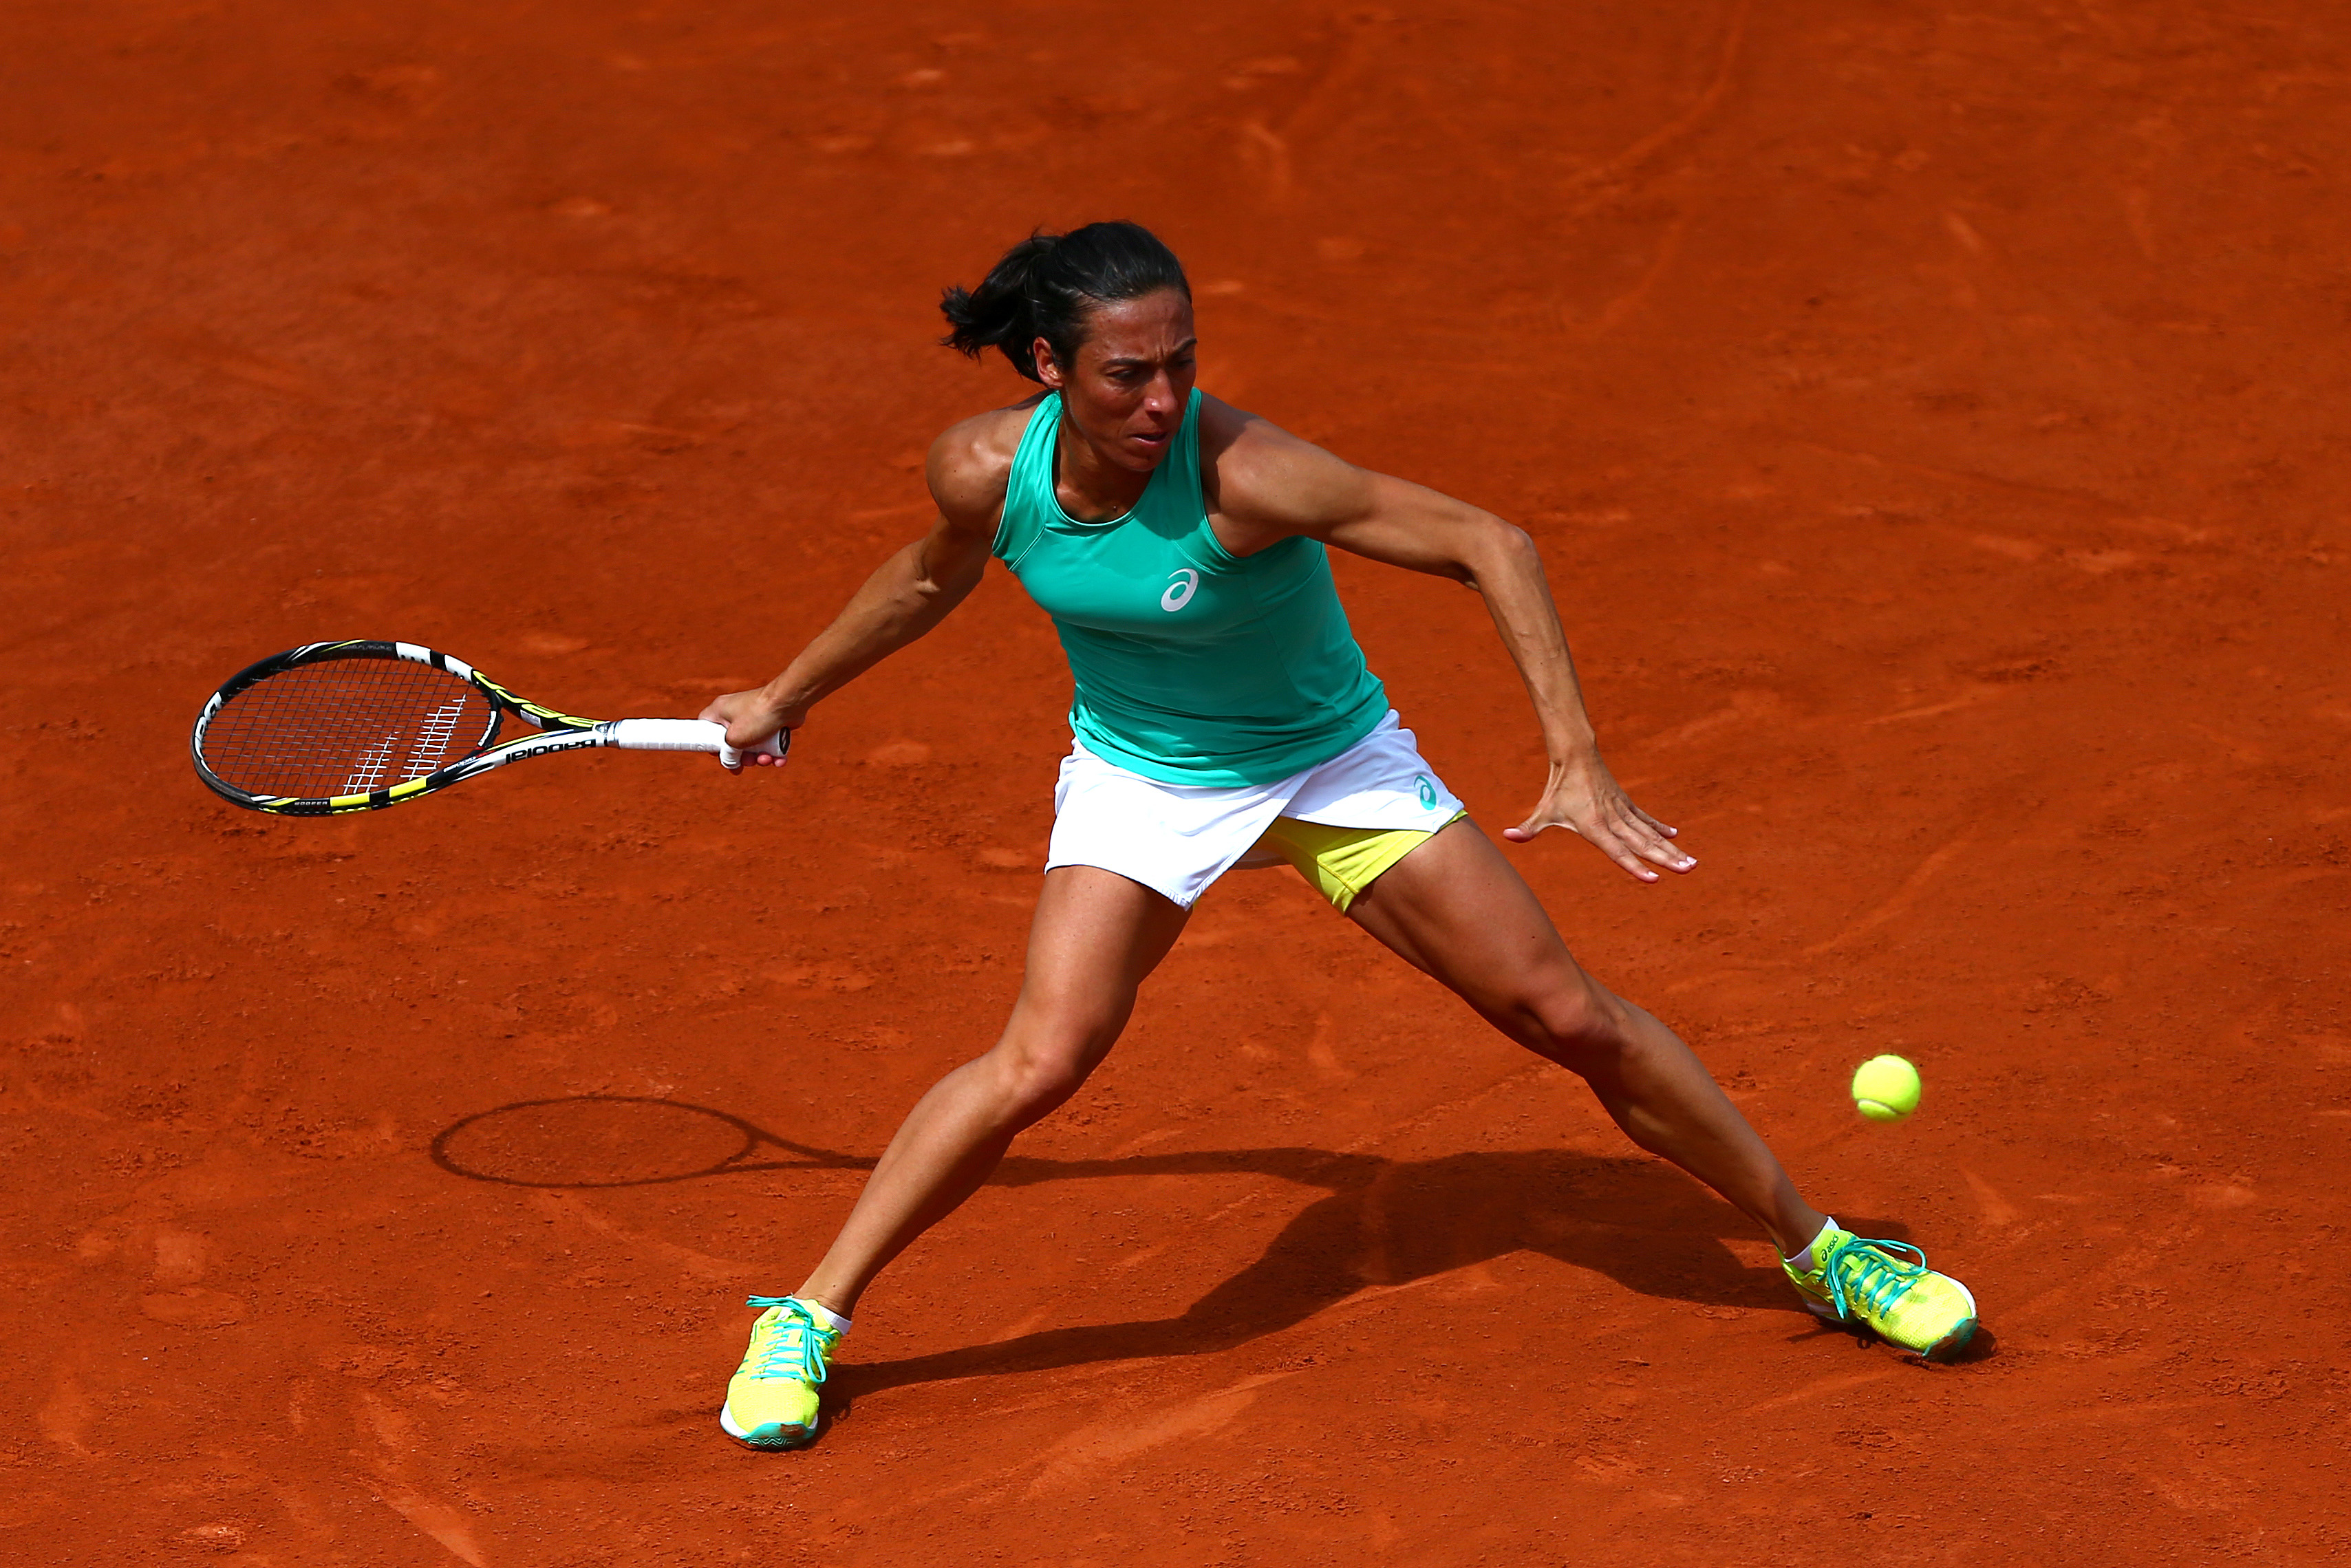 Schiavone d. No. 18 seed Kuznetsova 6–7(11), 7–5, 10-8 in an epic.